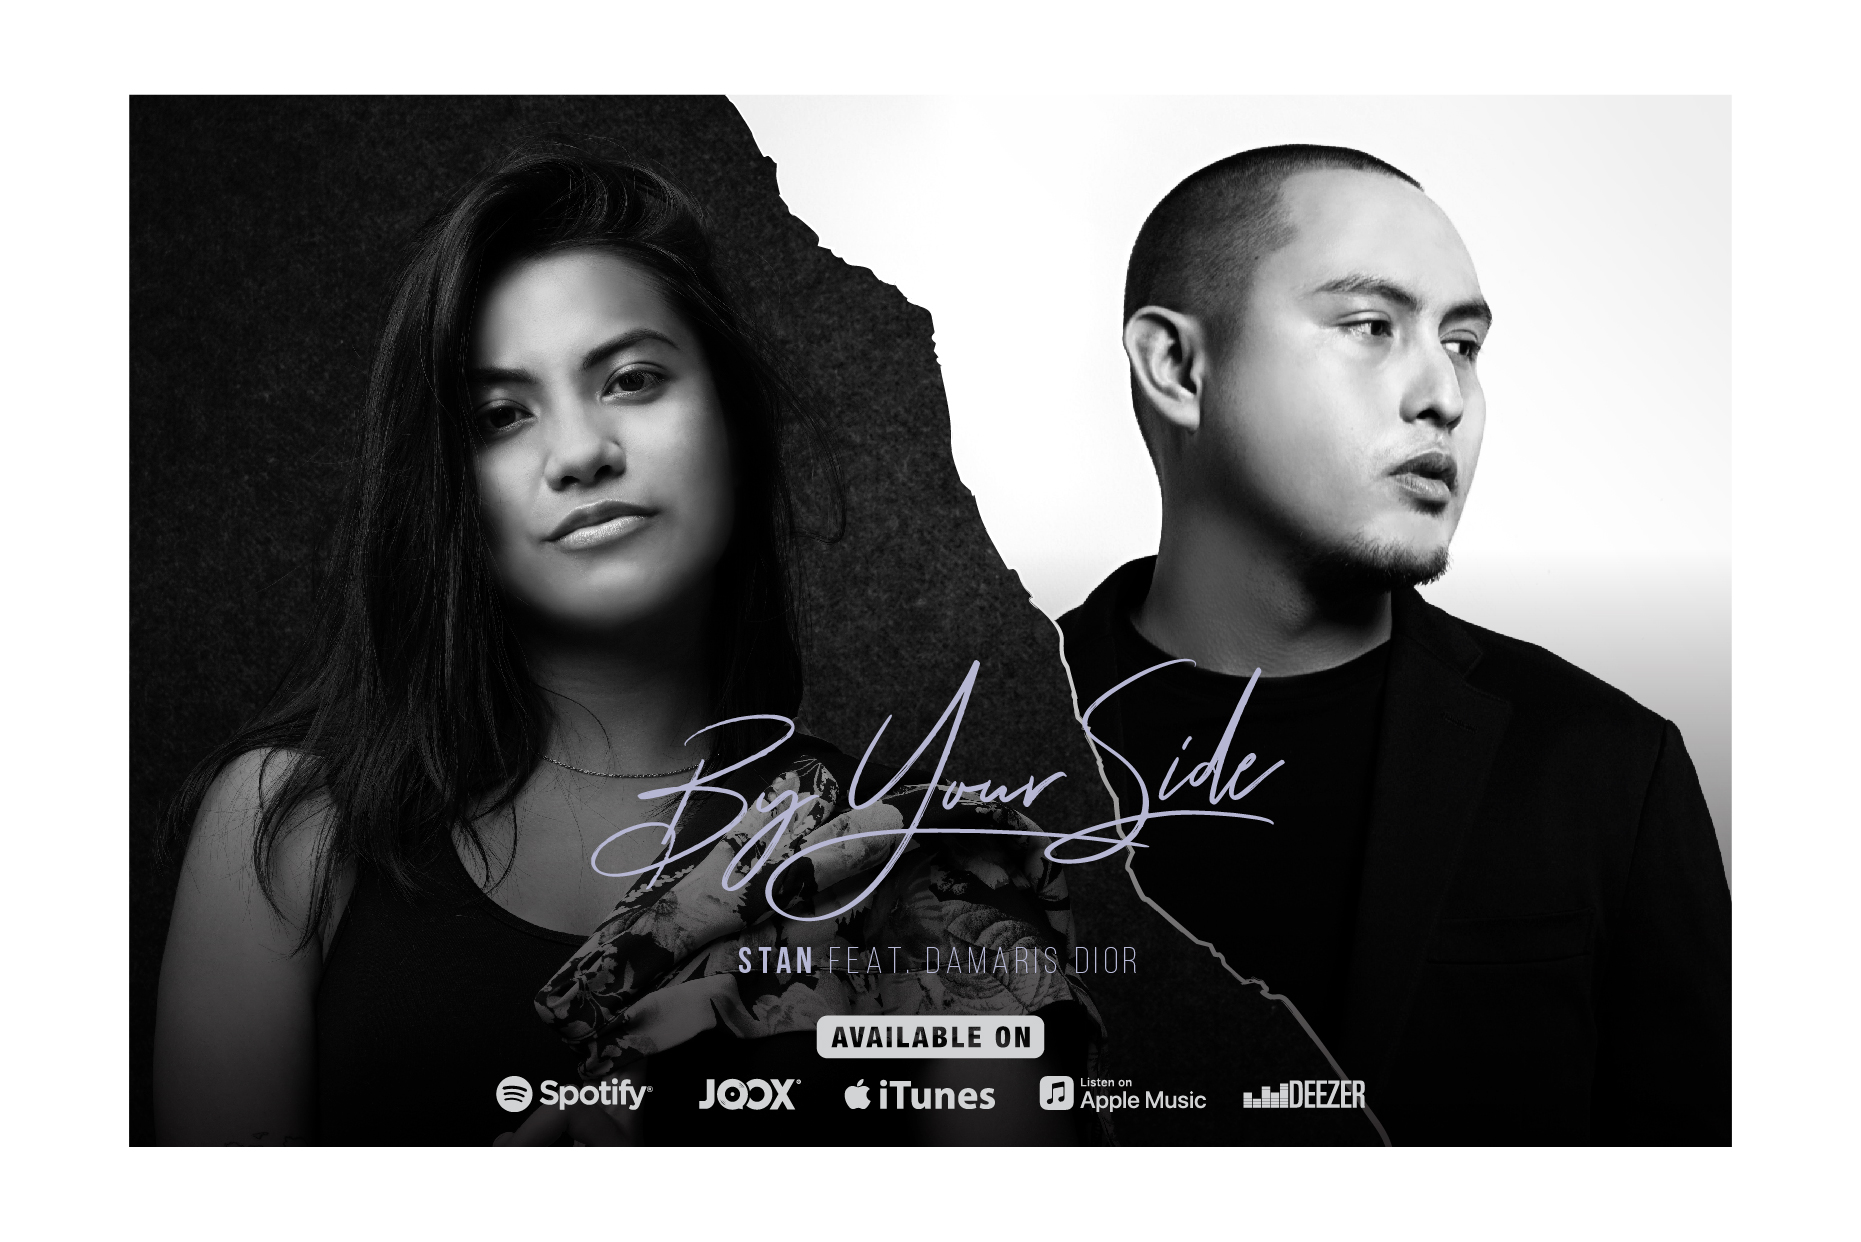 INSPIRE ARTISTRY'S HIP-HOP ARTIST STAN RELEASES 'BY YOUR SIDE'  FEATURING DAMARIS DIOR